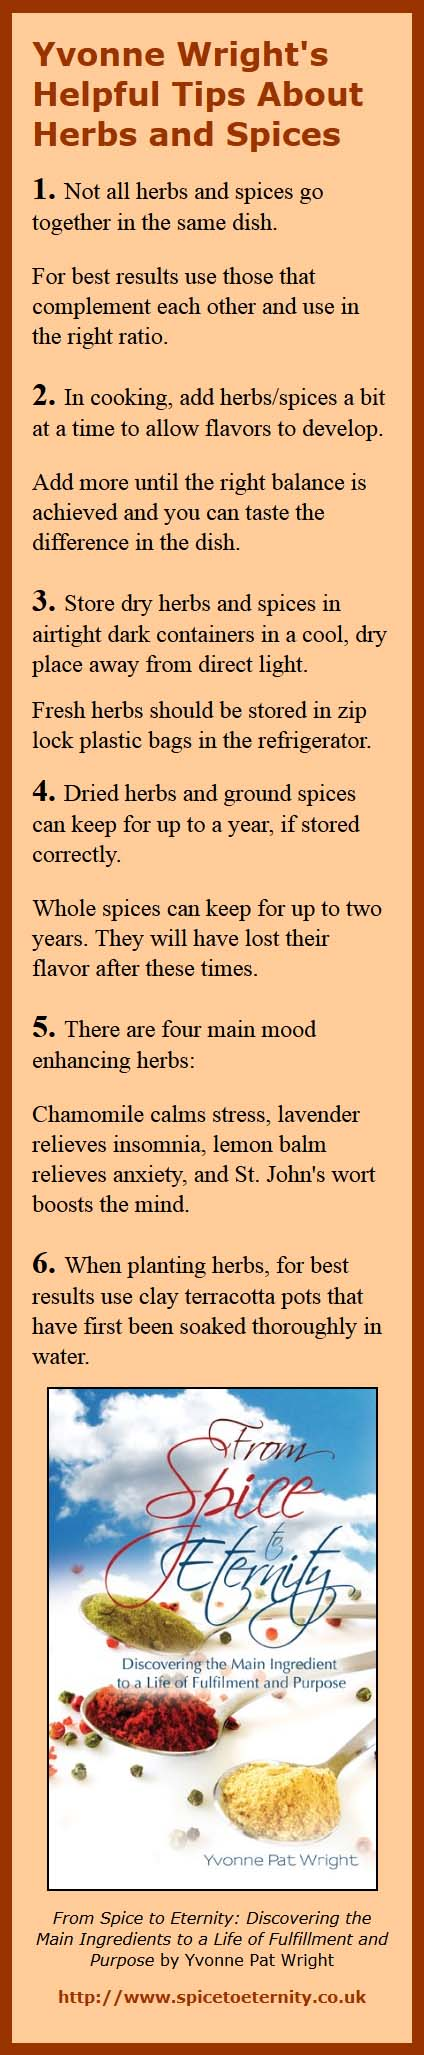 Yvonne Wright's Helpful Tips About Herbs and Spices